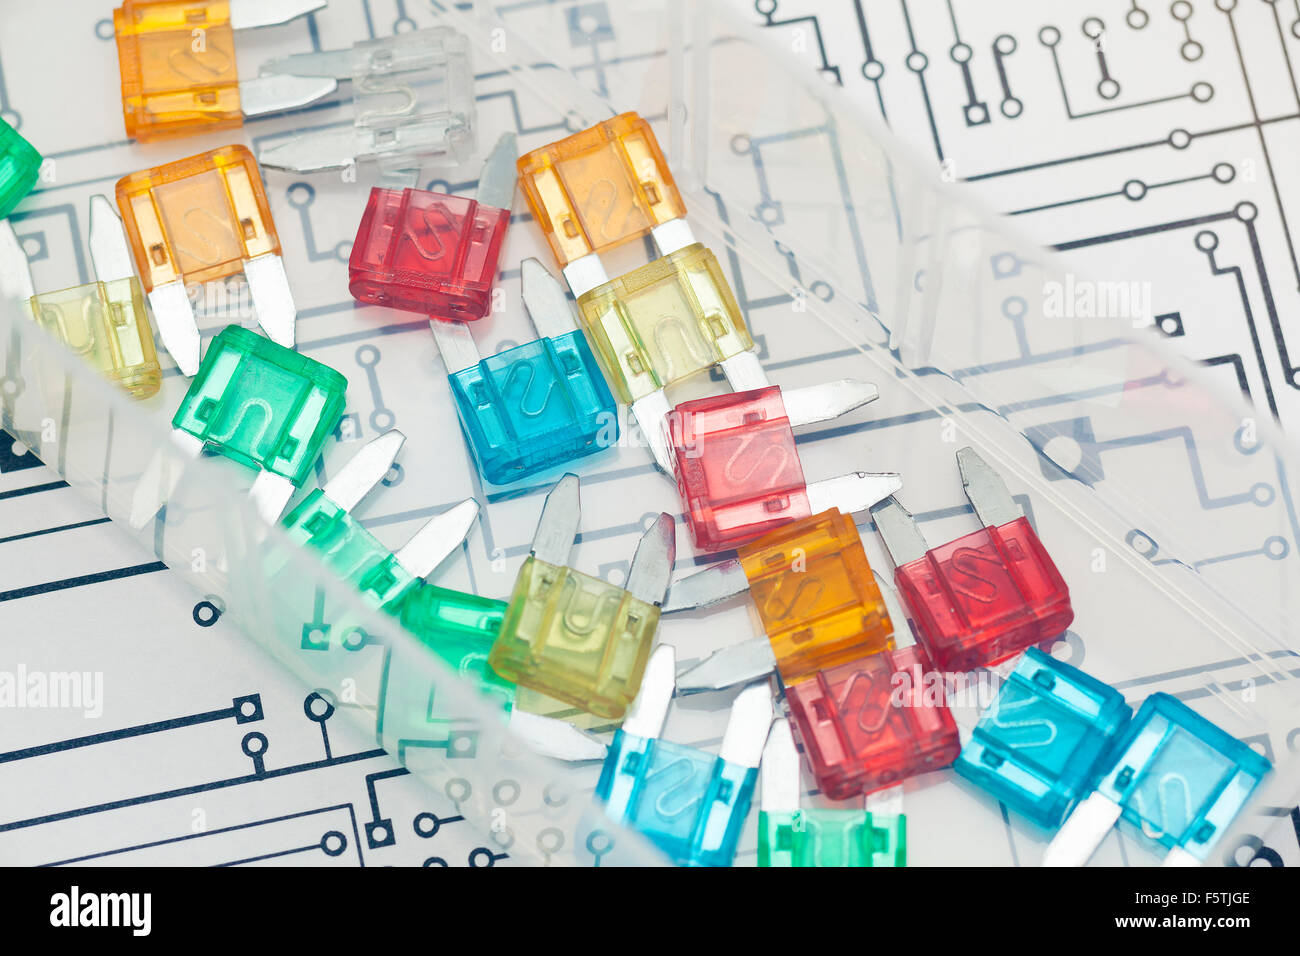 Car Fuse Stock Photos Images Alamy Ge Box Pull Outs Detail Of Fuses And Electronic Circuit Image